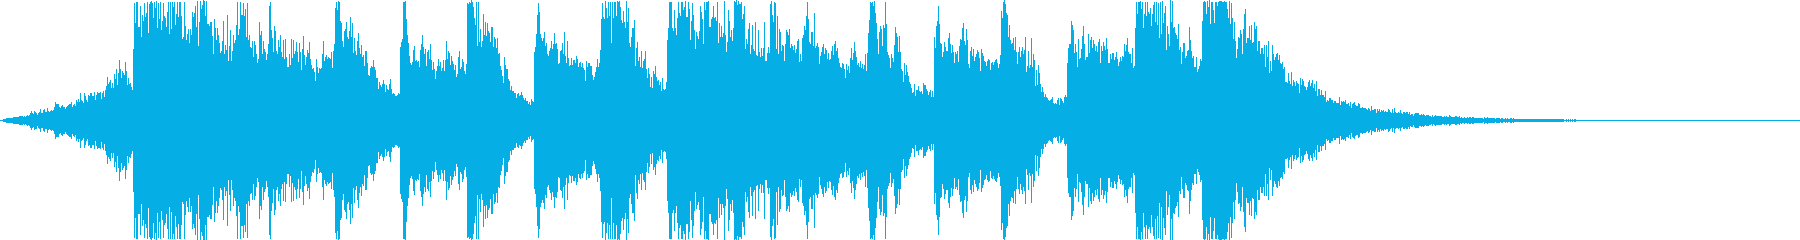 Comical and fun Halloween horror song e's reproduced waveform